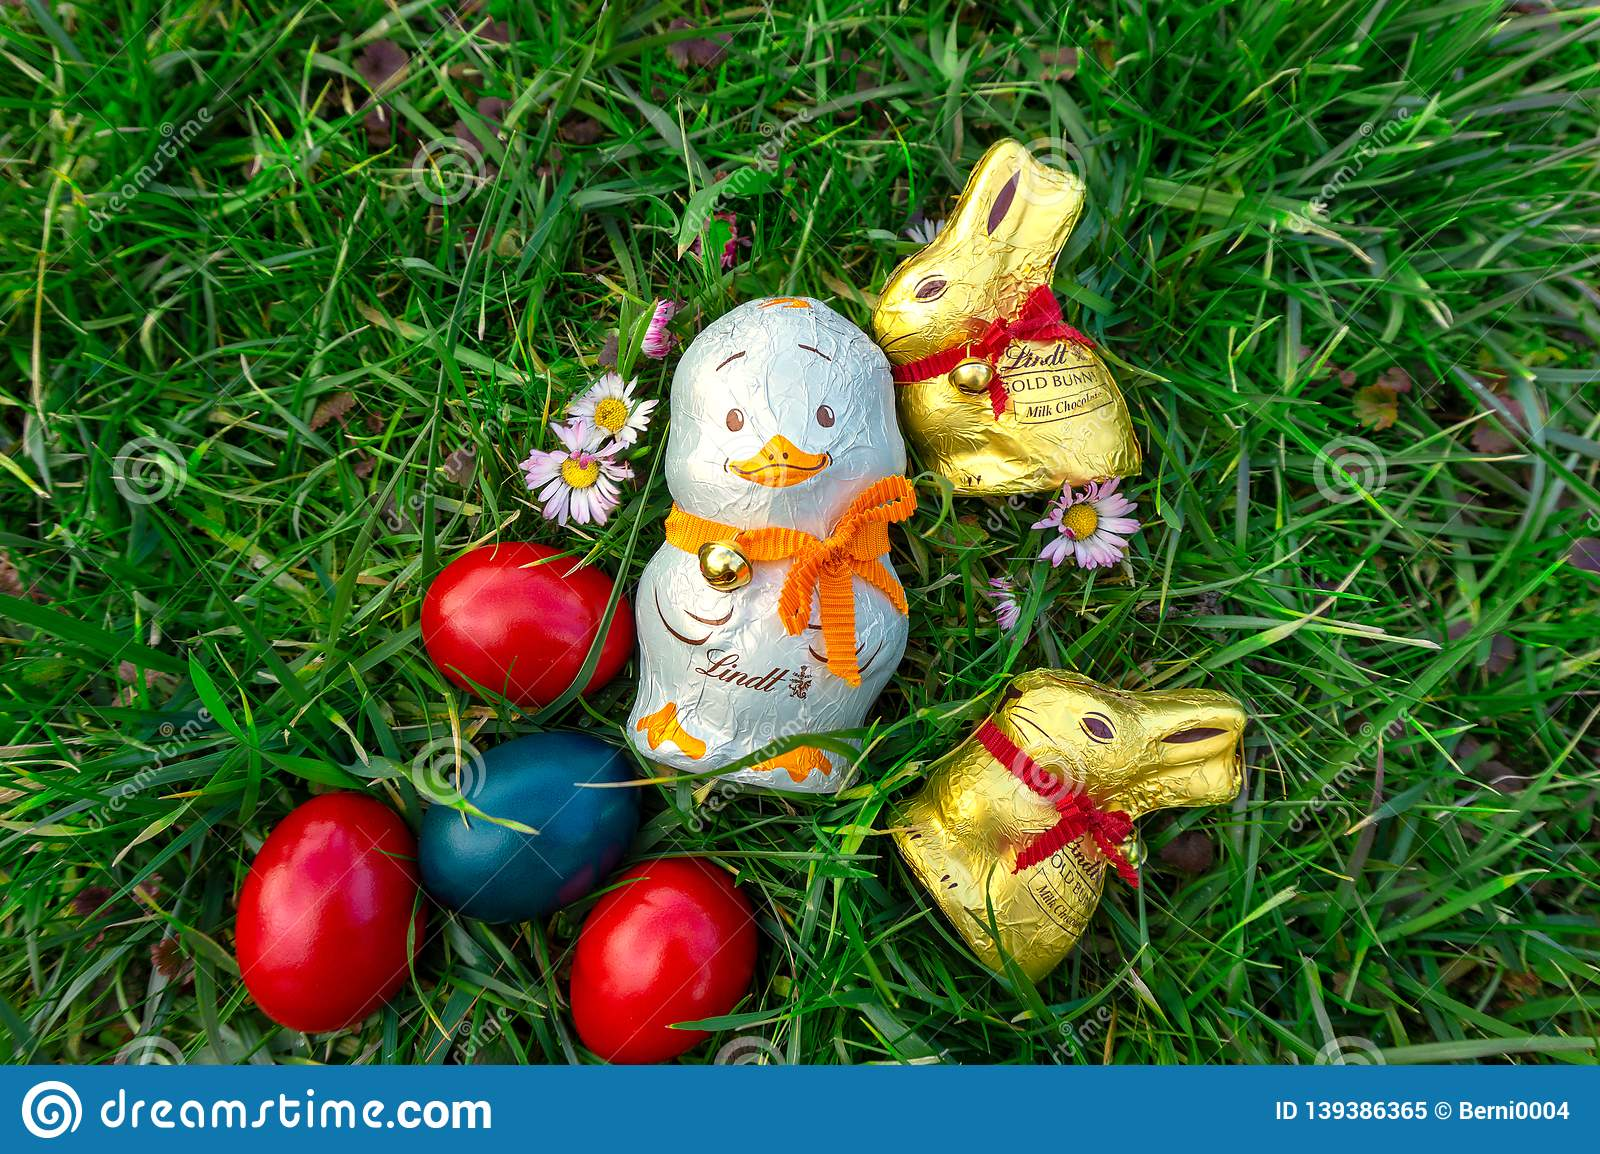 Lindt swiss golden milk chocolate bunny with red collar bell and a chocolate duck hidden in the grass Traditional chocolate on